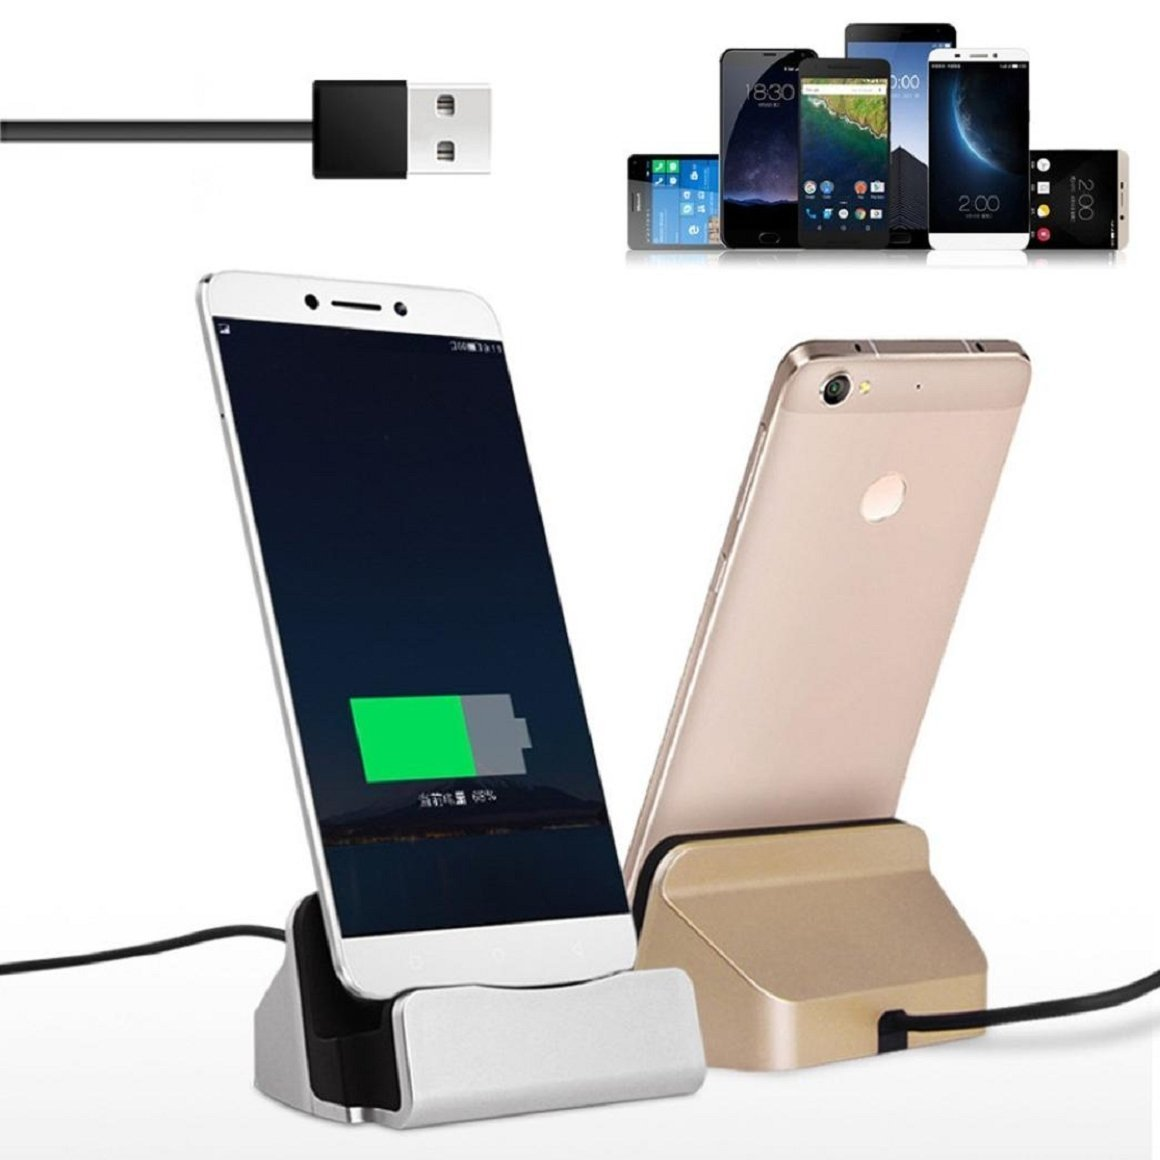 Hot Selling USB Type C Cable Charger Dock Station Desktop Stand For Letv Le 2 2s X600 Max Max 2 Le 1s X500 USB C Charger Station